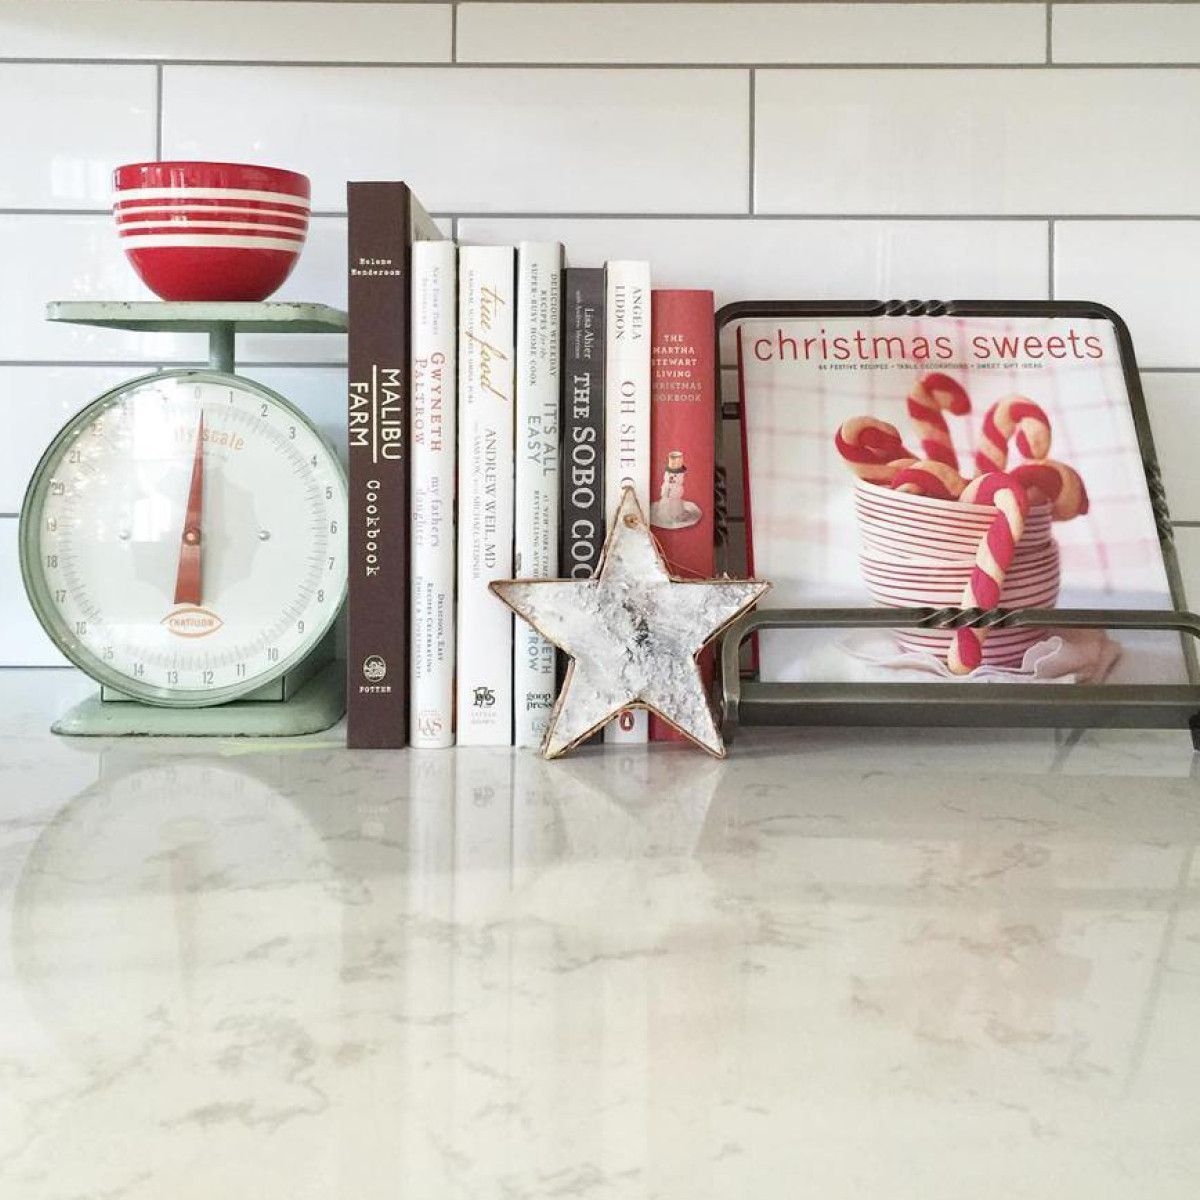 Utilize colorful cook books when decorating your kitchen for Christmas.